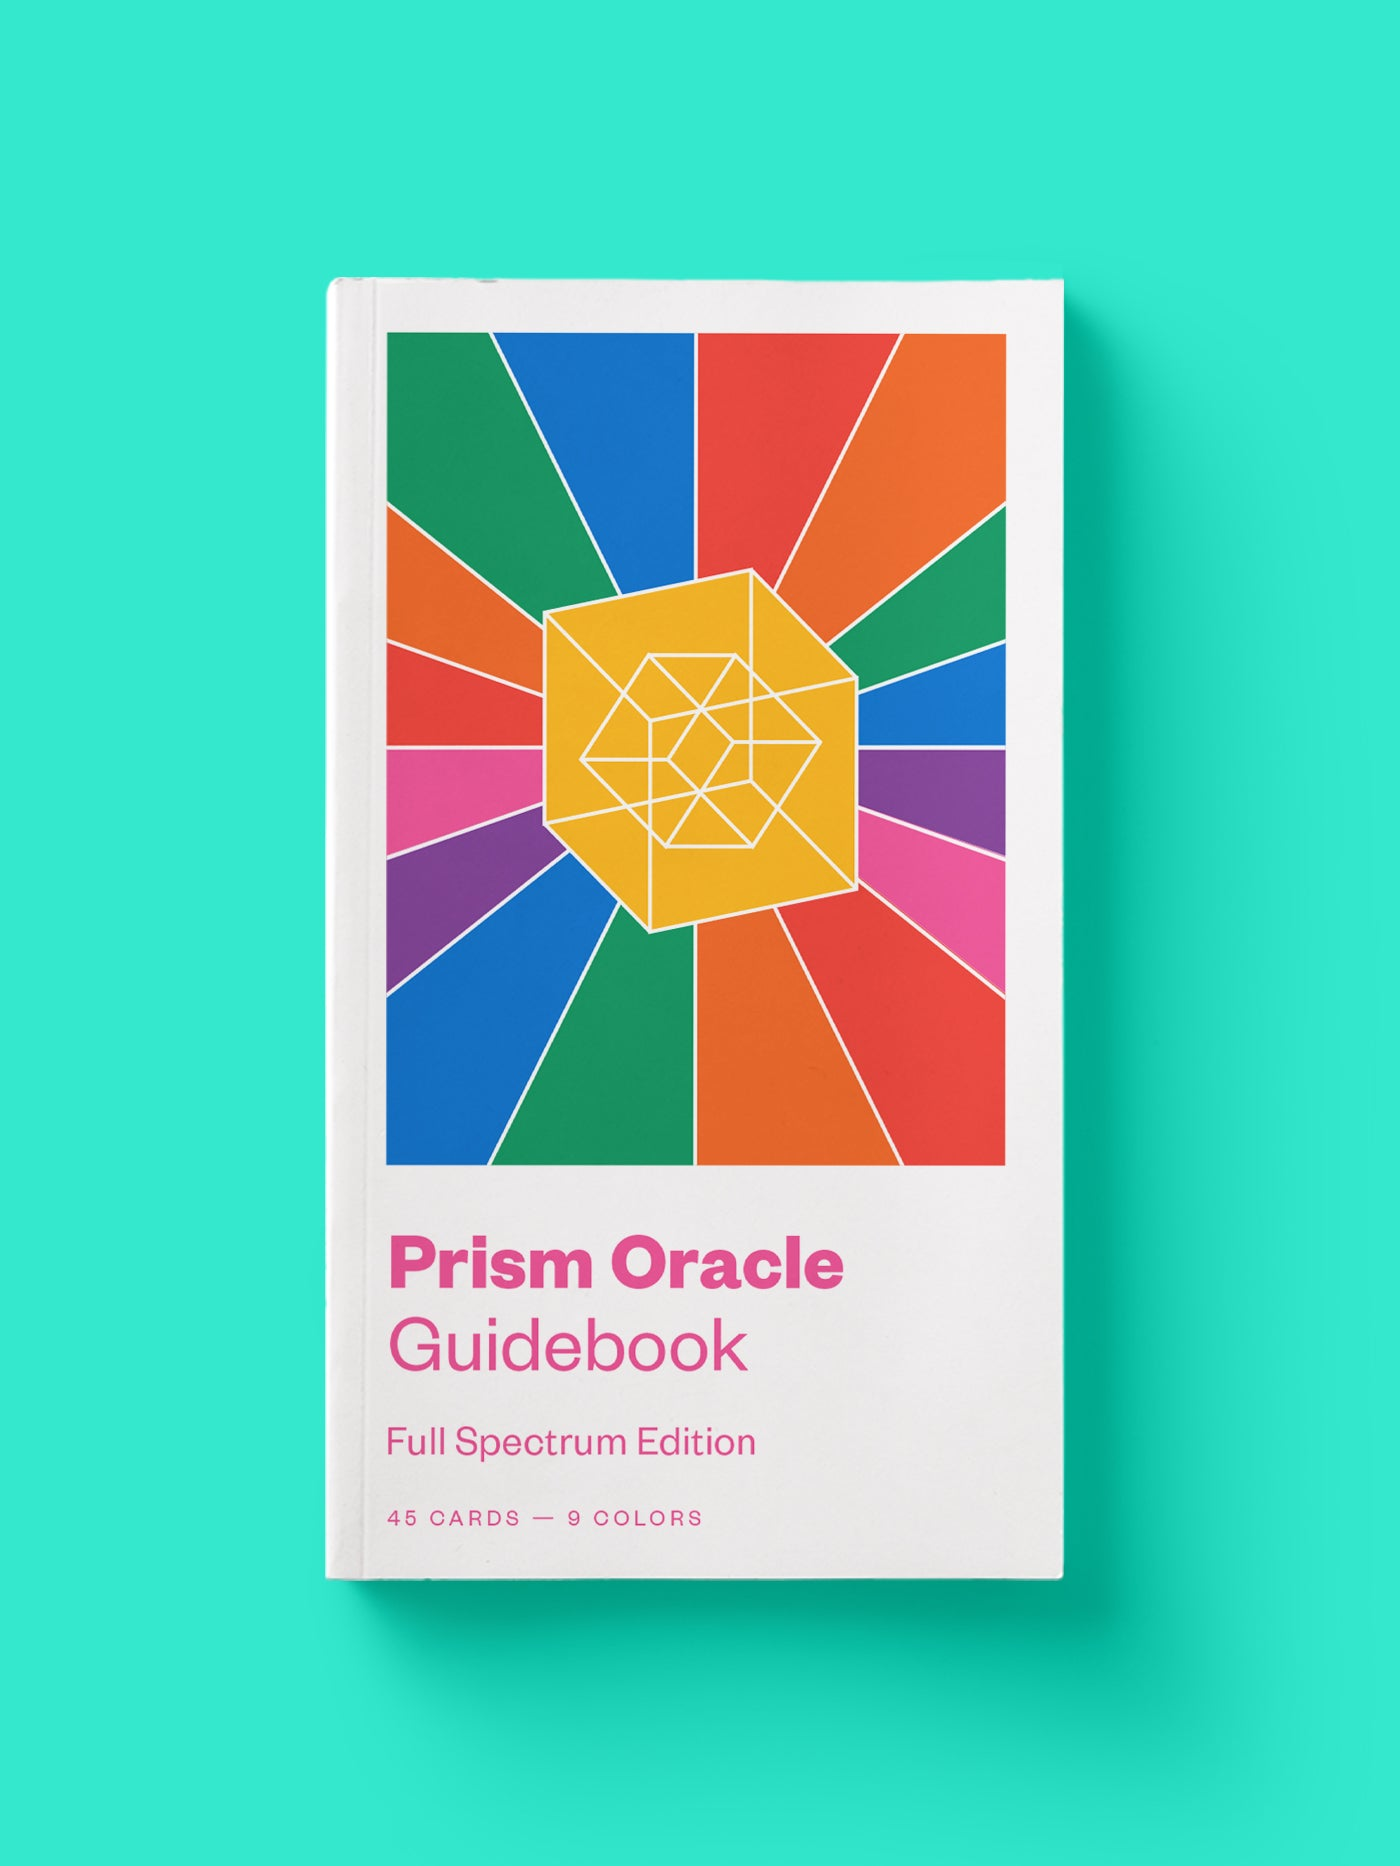 The Prism Oracle